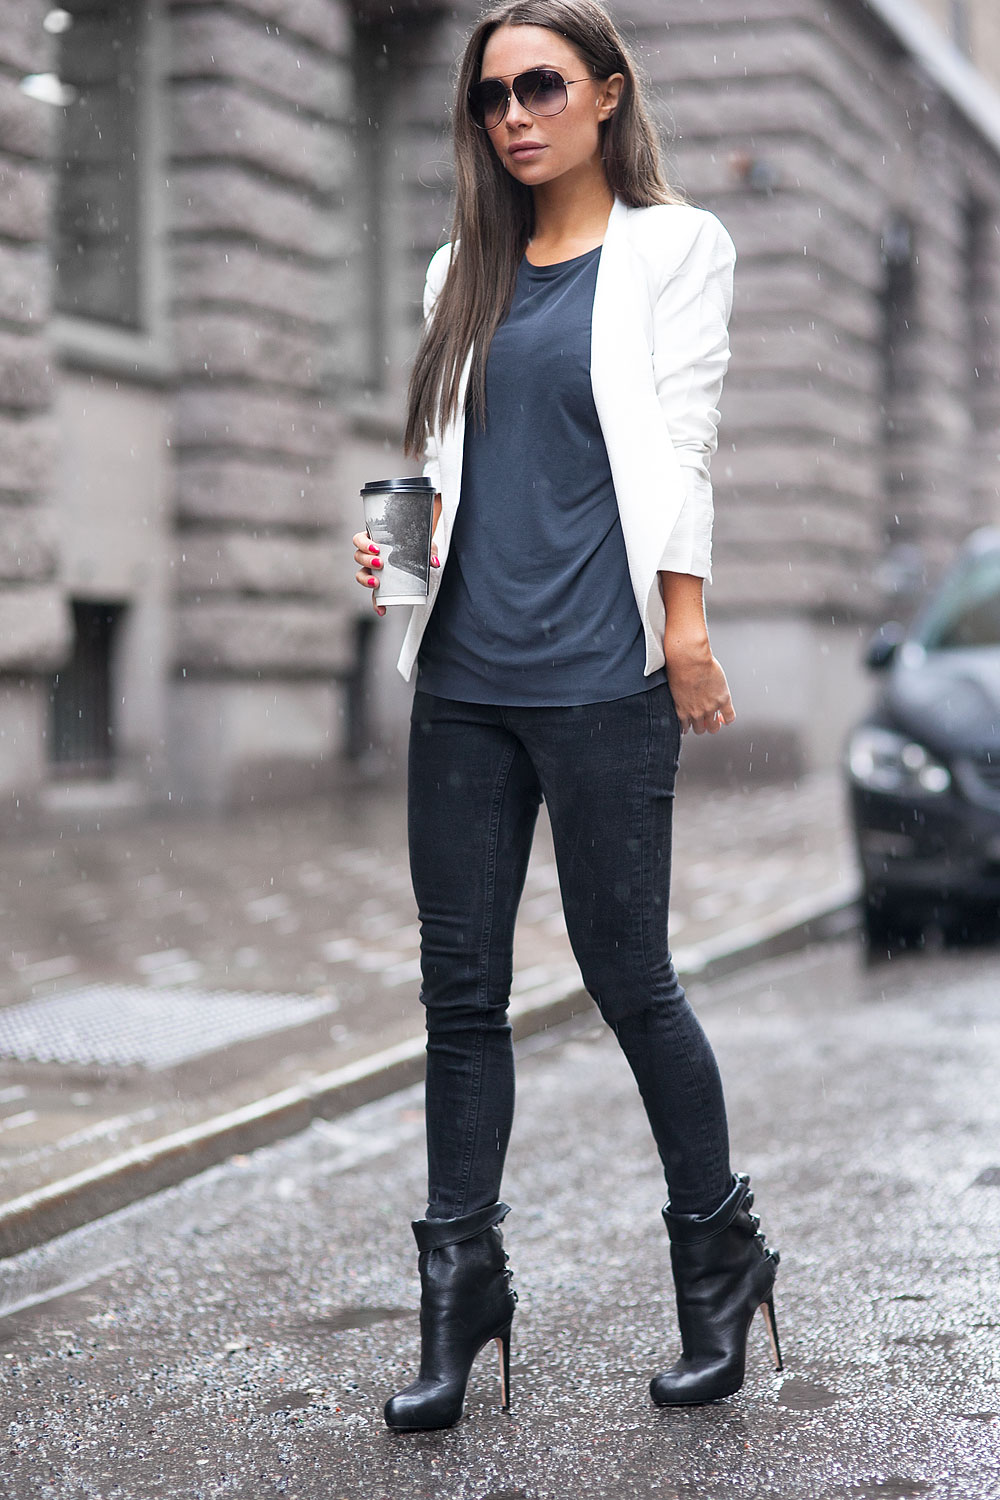 Johanna Olsson is wearing black jeans from Frame, ankle boots from Max Kibardin, White blazer from Cameo and the top is from lindex